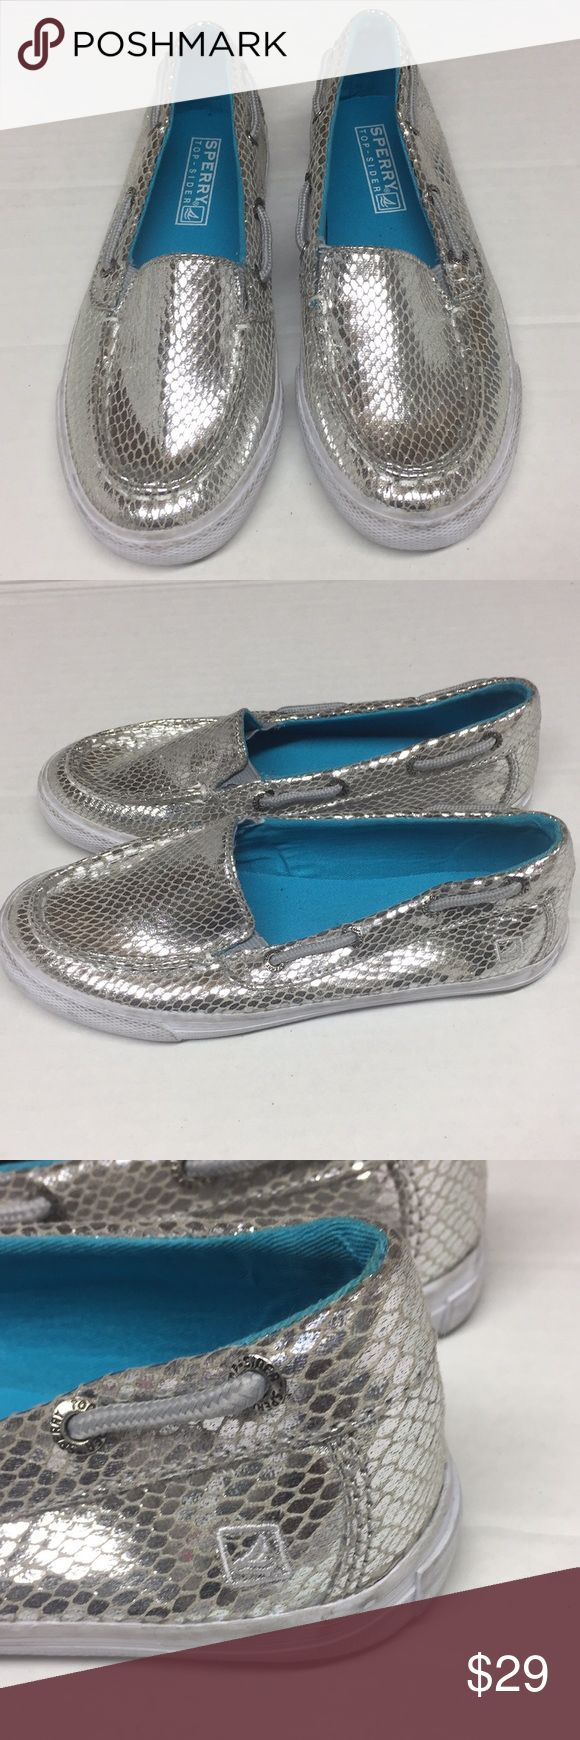 New box truck heartwood manufacturing - Sperry Top Spider Sea Bright Silver 2 5 Boat Shoe Manufacturer Sperry Size 2 5 Manufacturer Color Silver Retail 48 00 Condition New Floor Sample